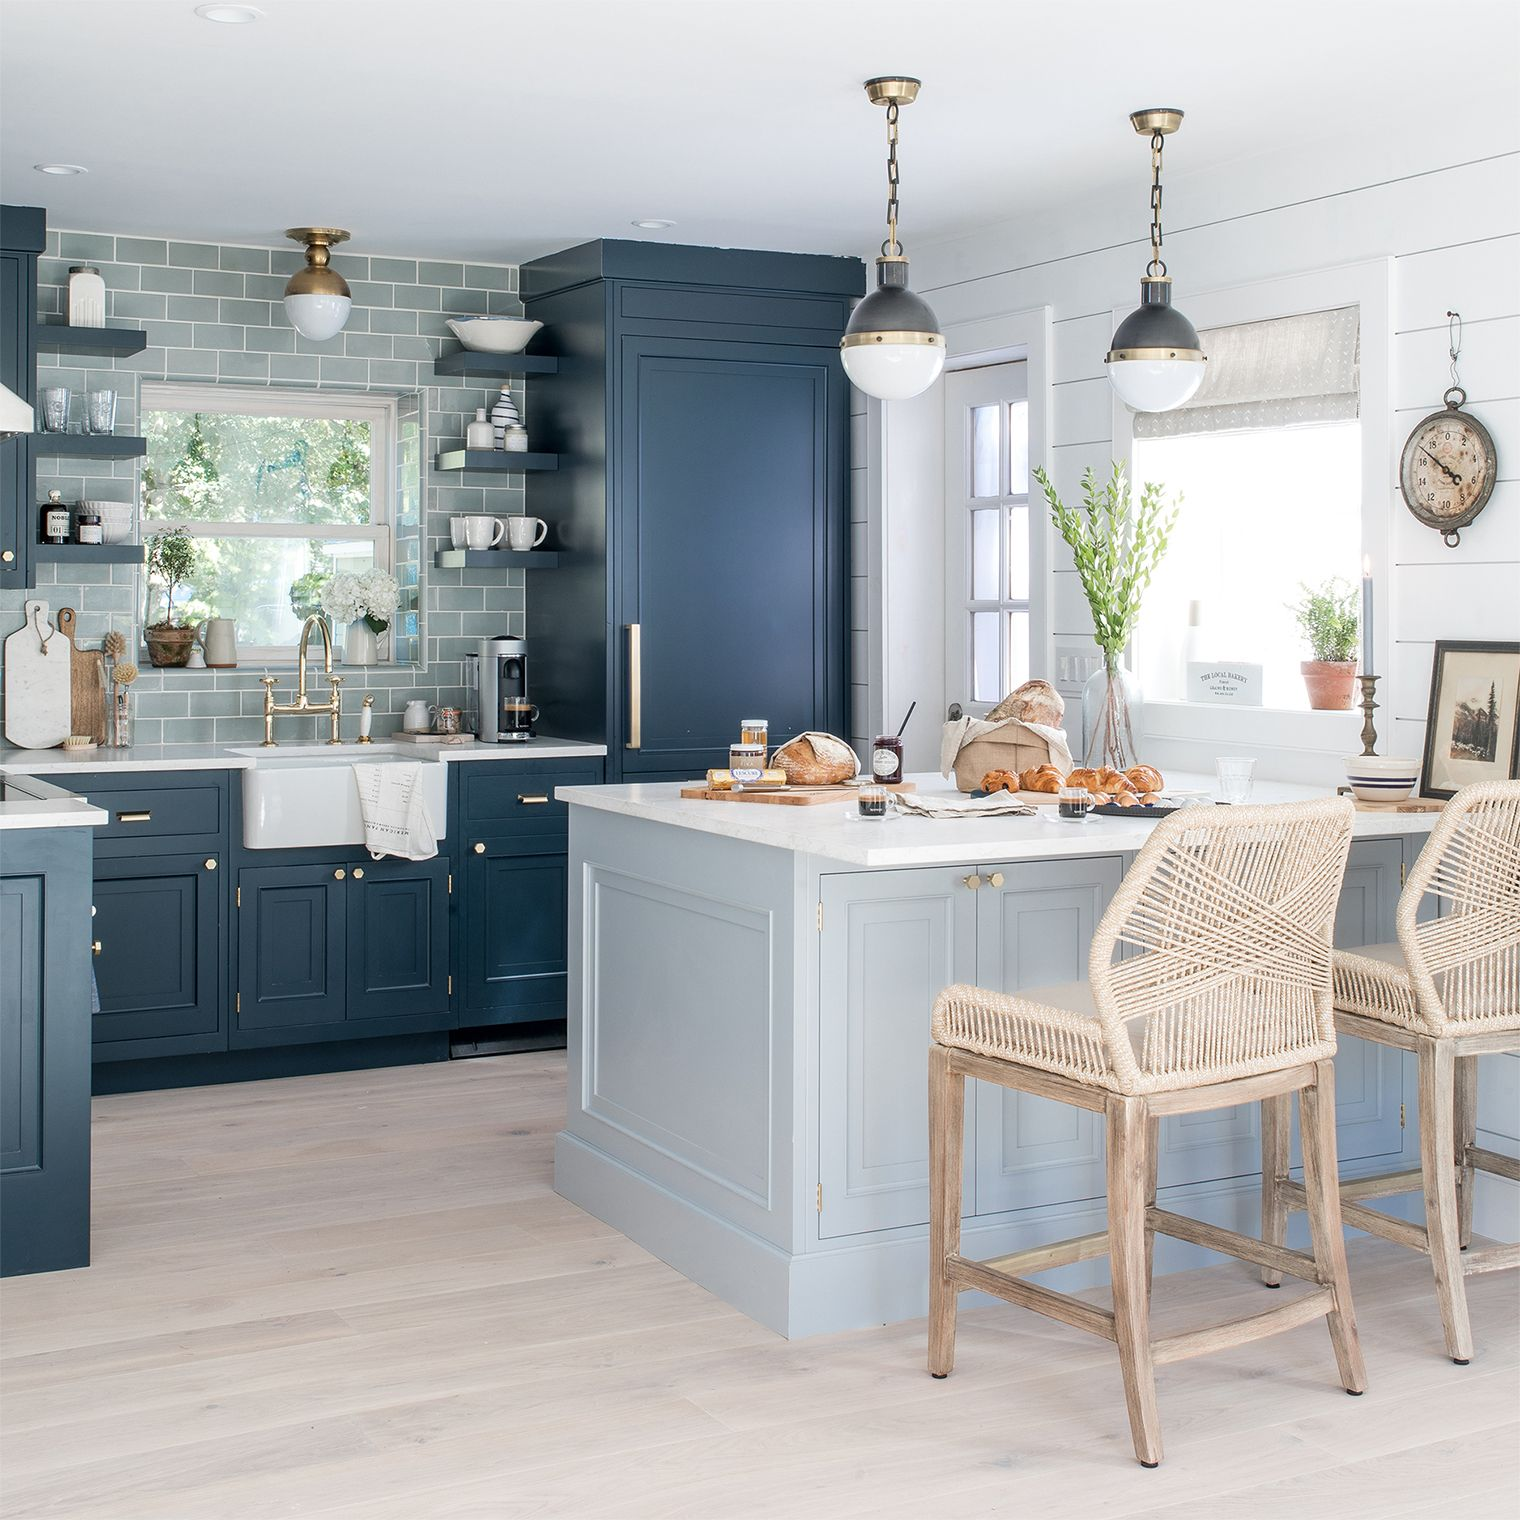 Our Beach House Kitchen: The Reveal | Küche